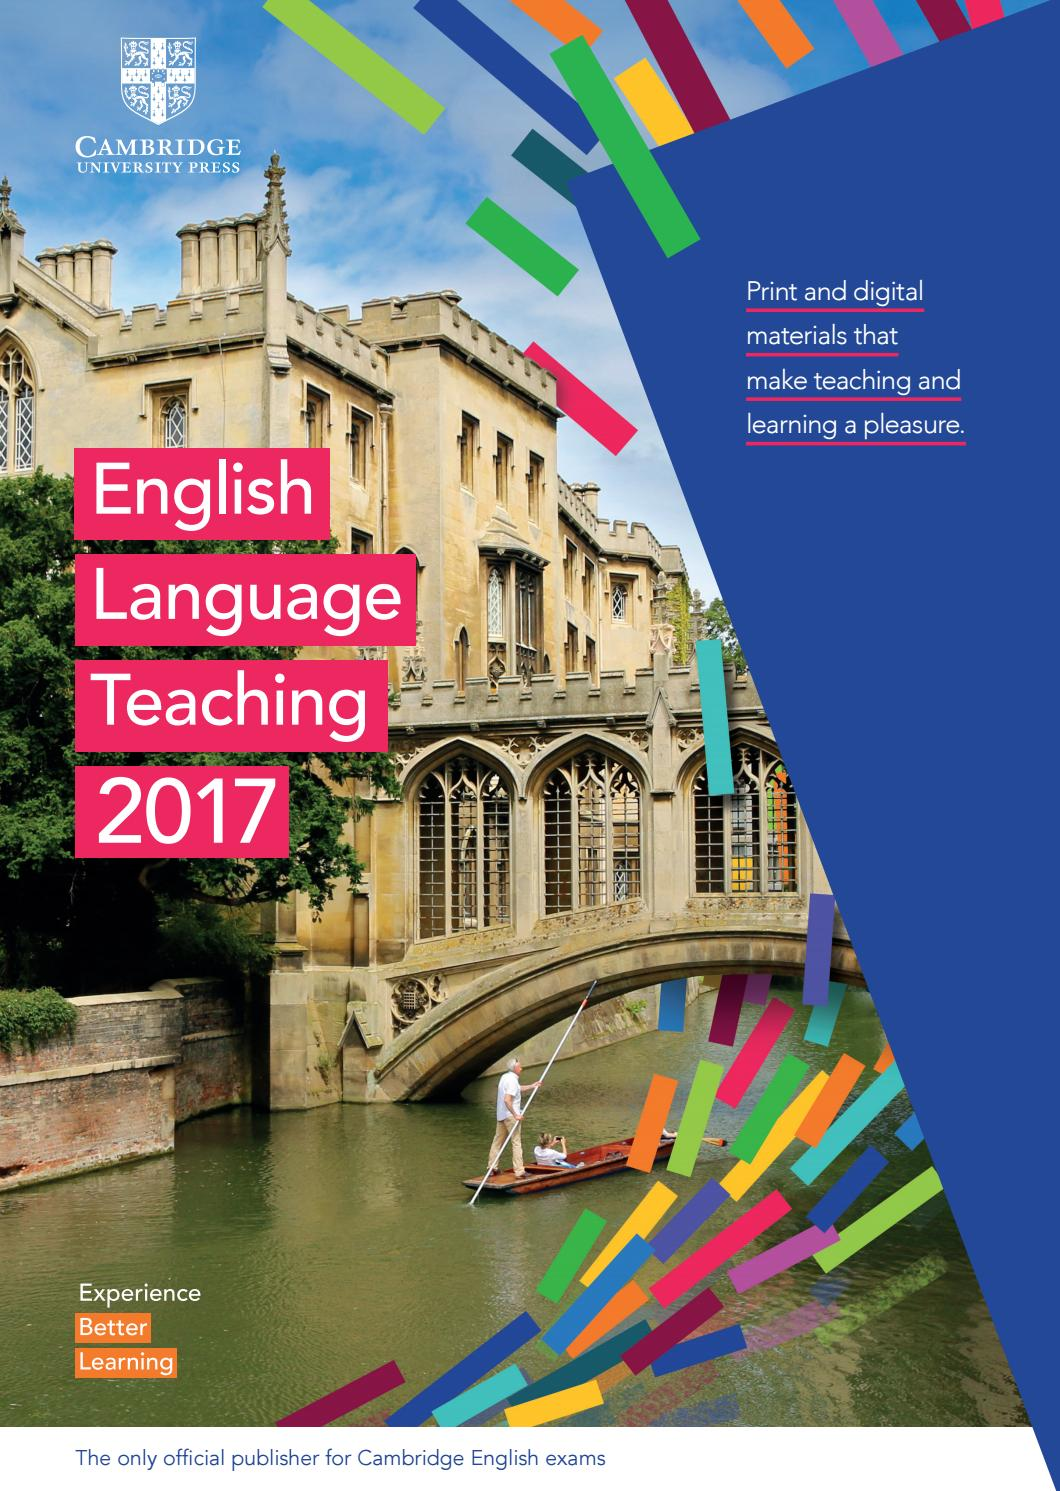 2017 ELT Cambridge University Press International Catalogue